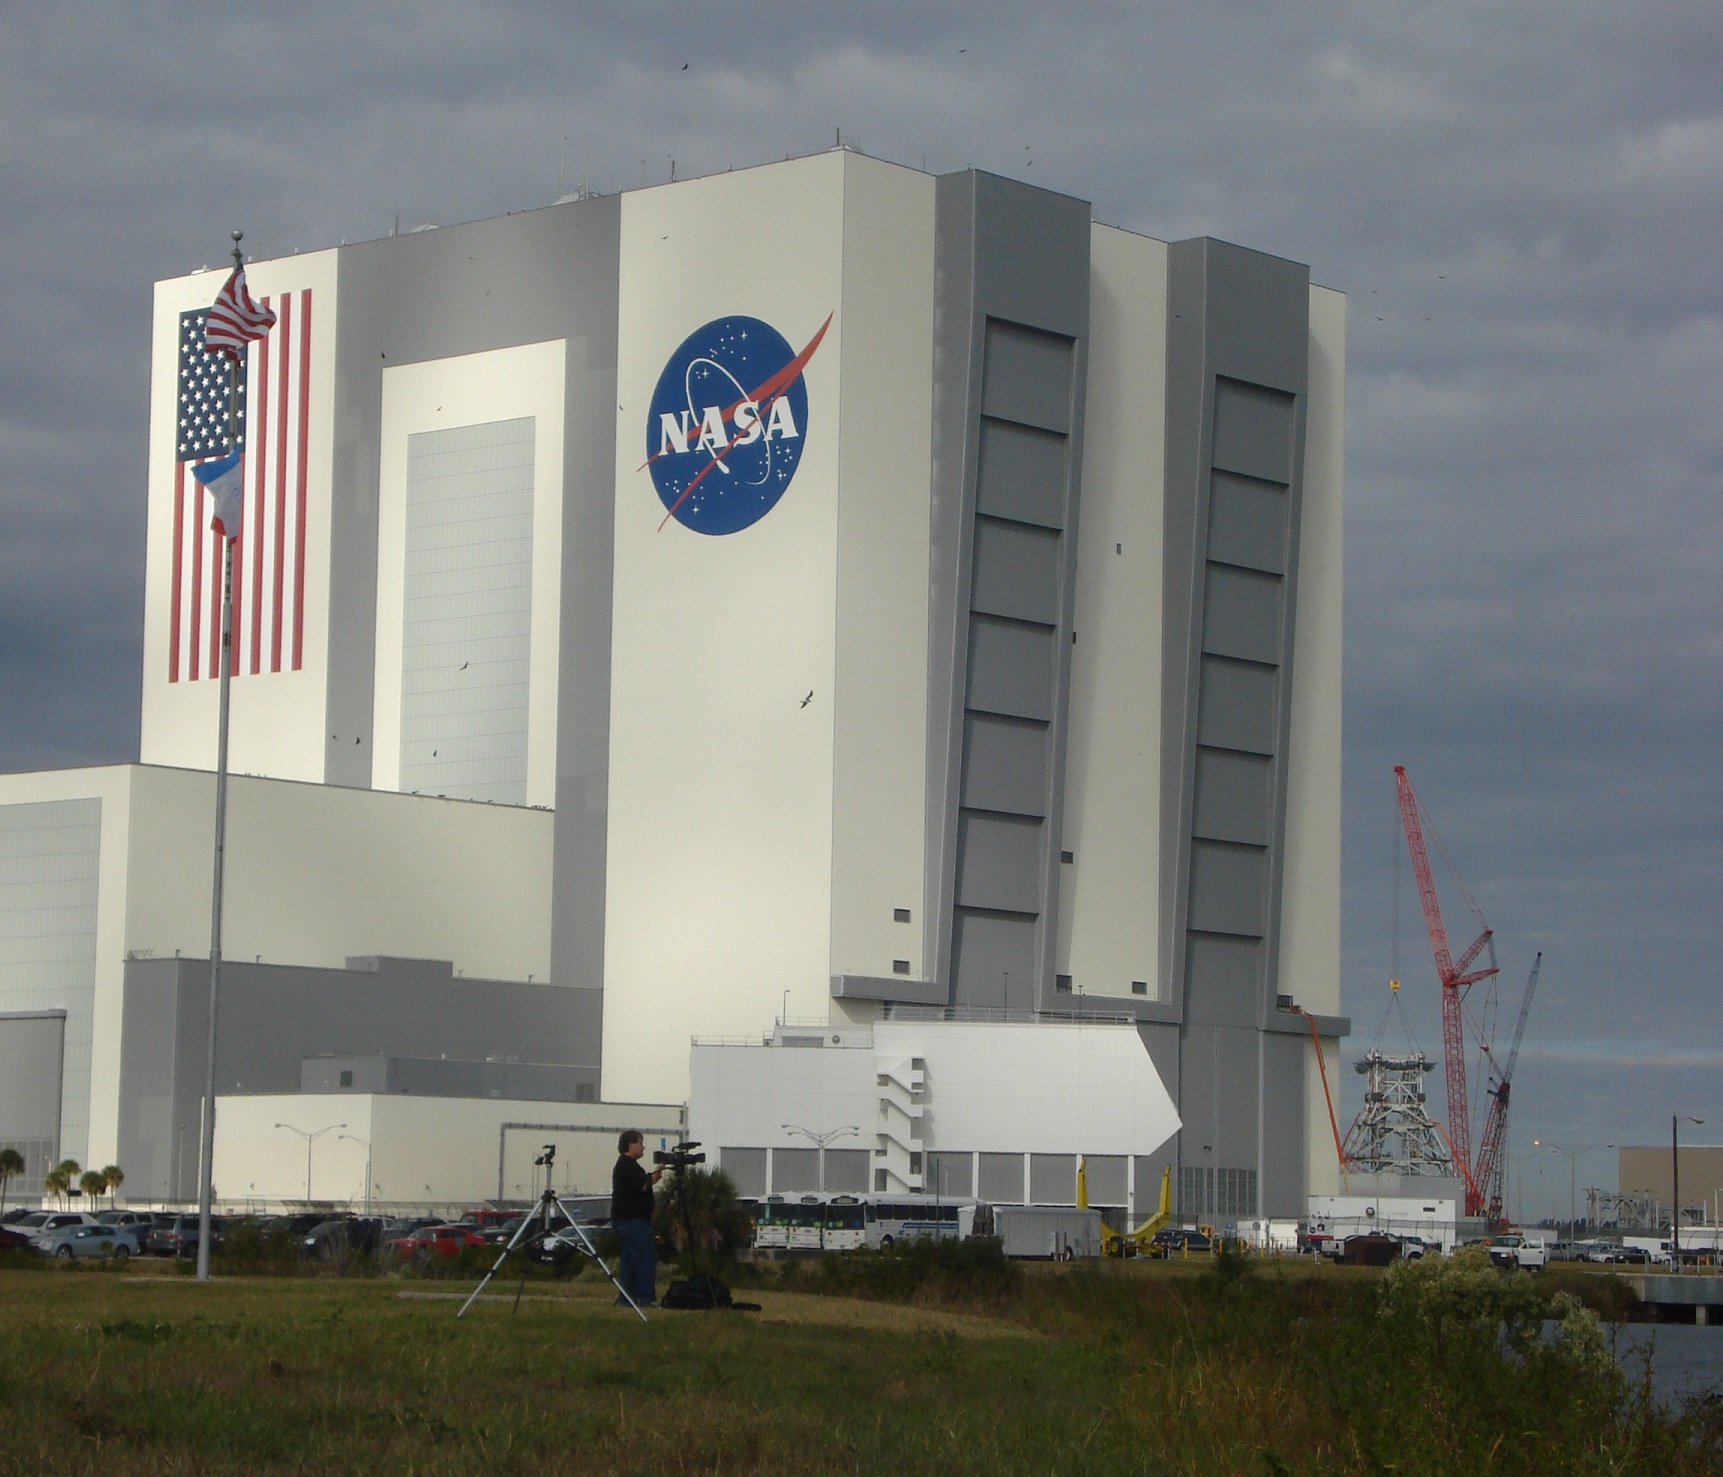 nasa building from inside - photo #10